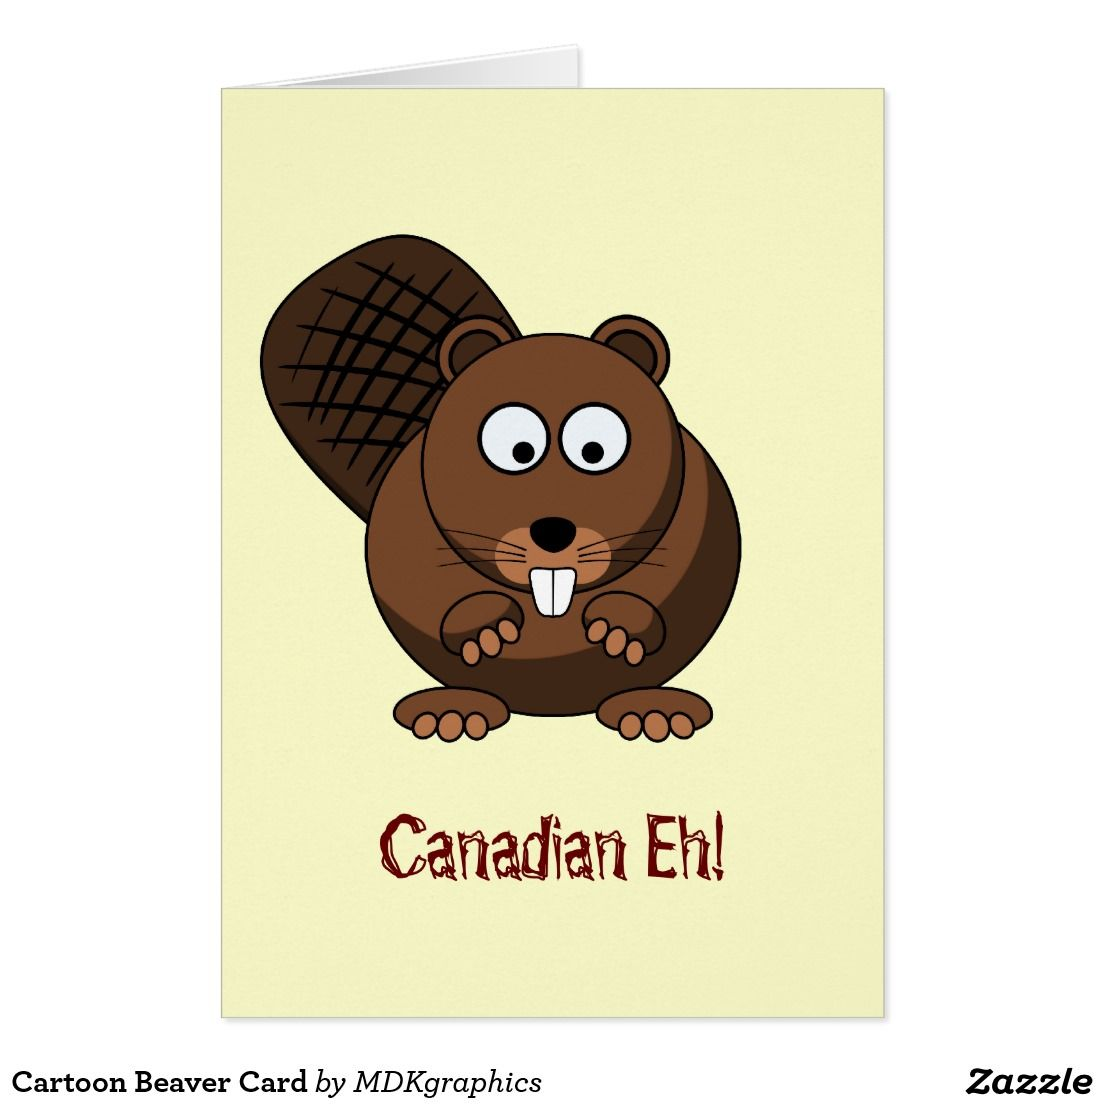 Cartoon beaver card graphic design projects